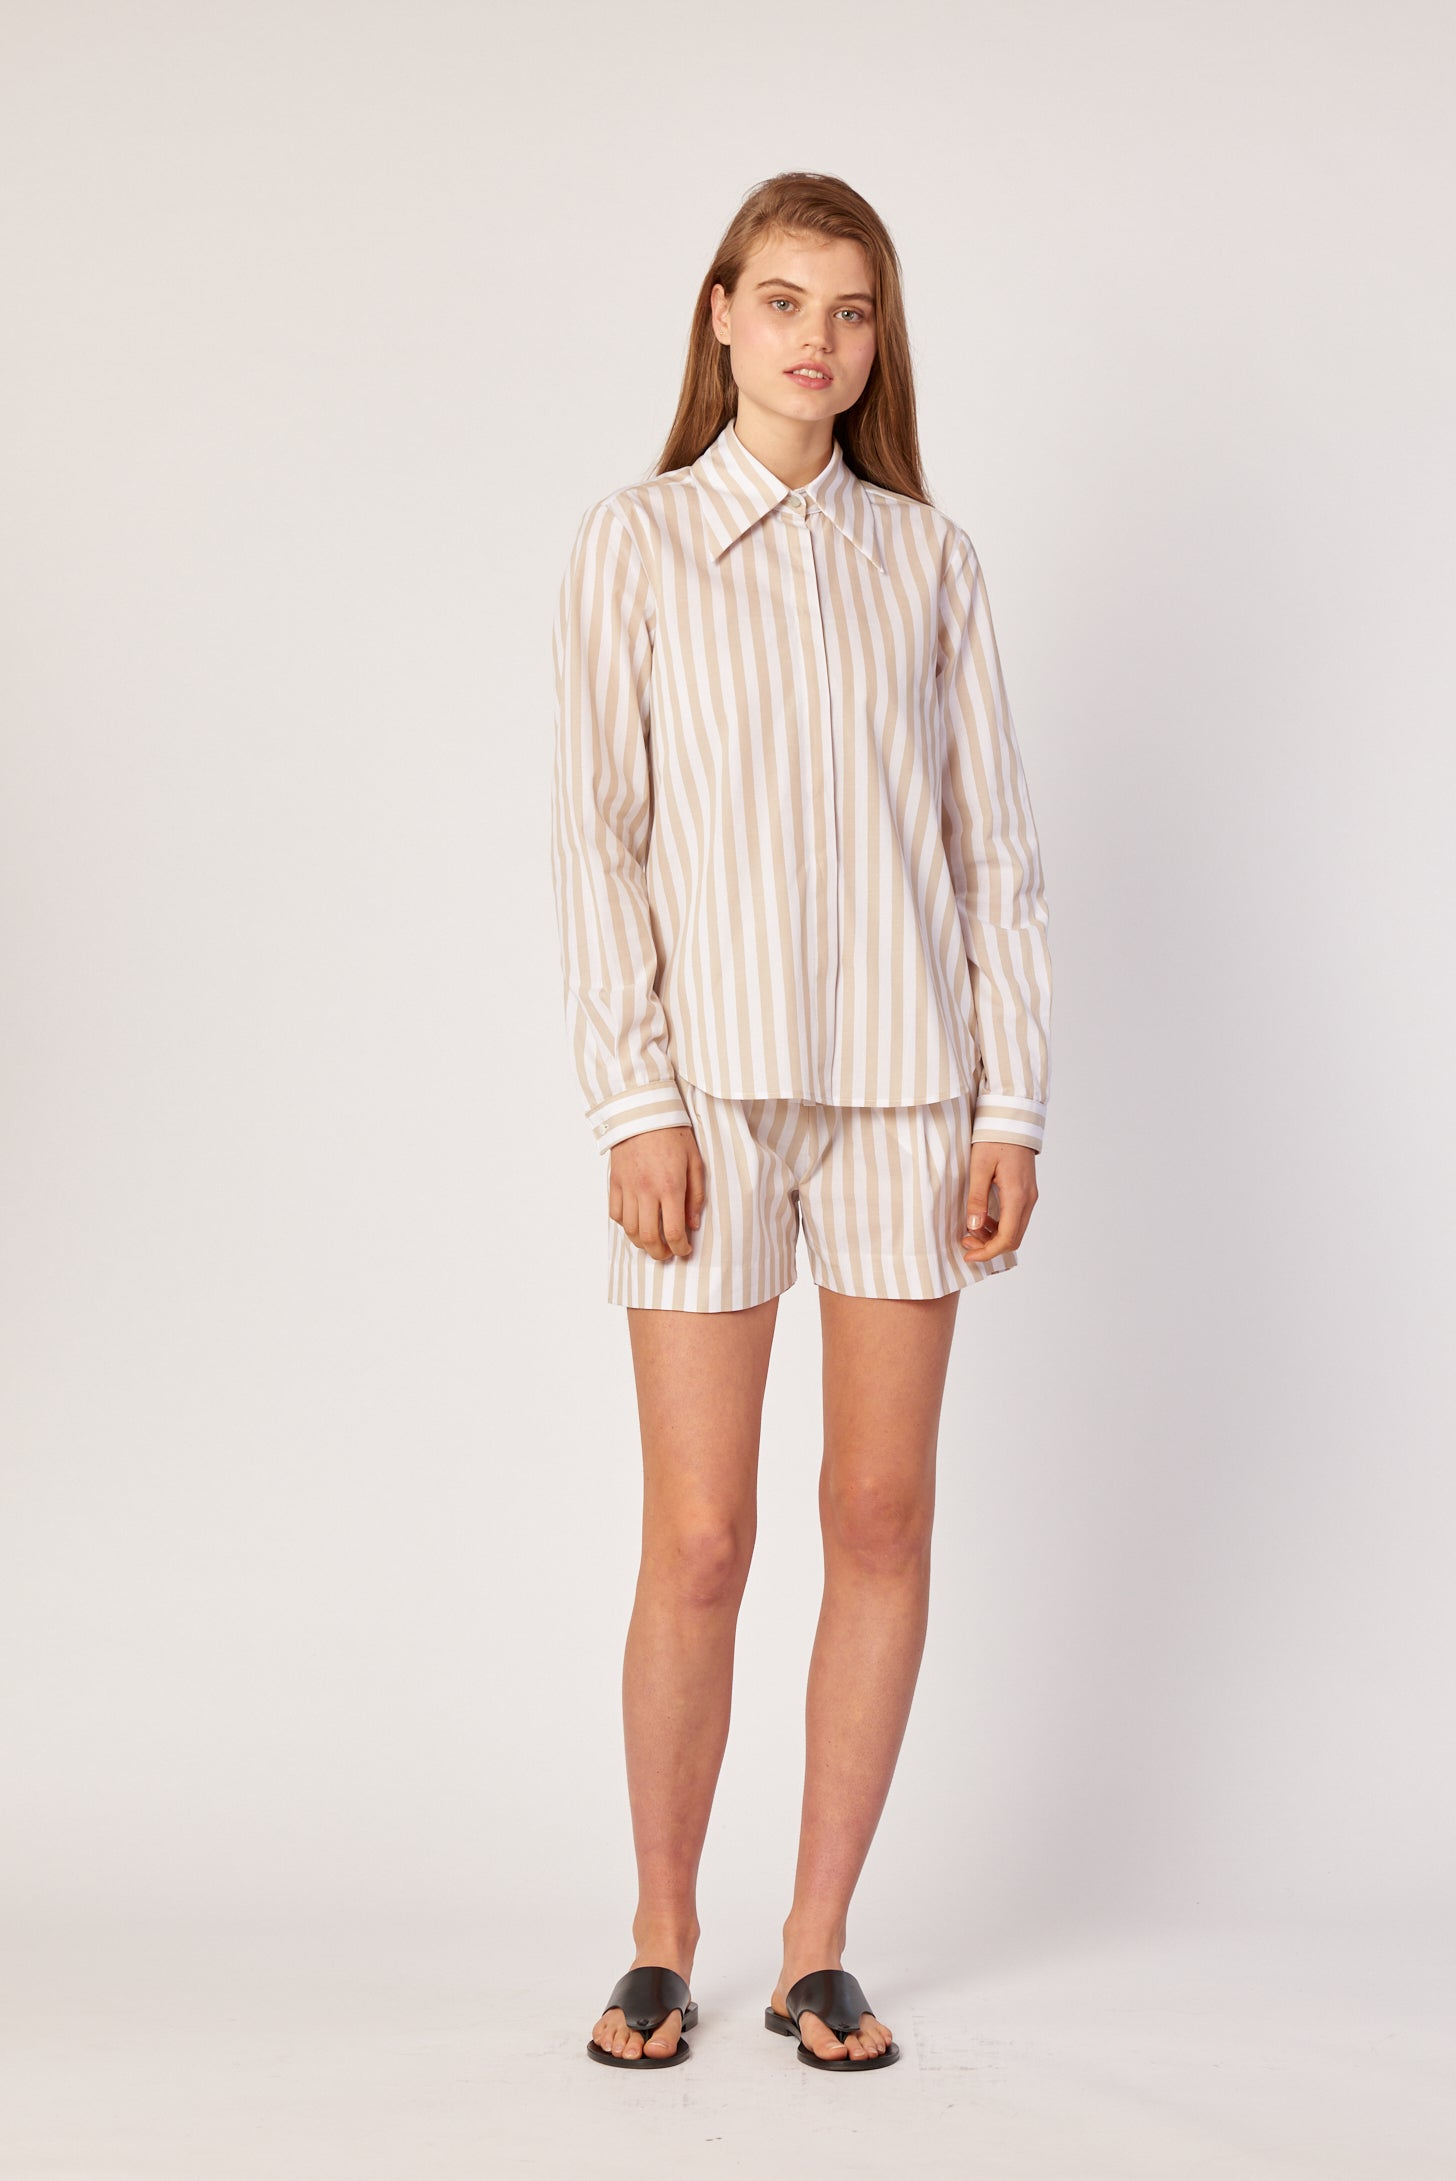 Inez Shirt - Tan Stripe